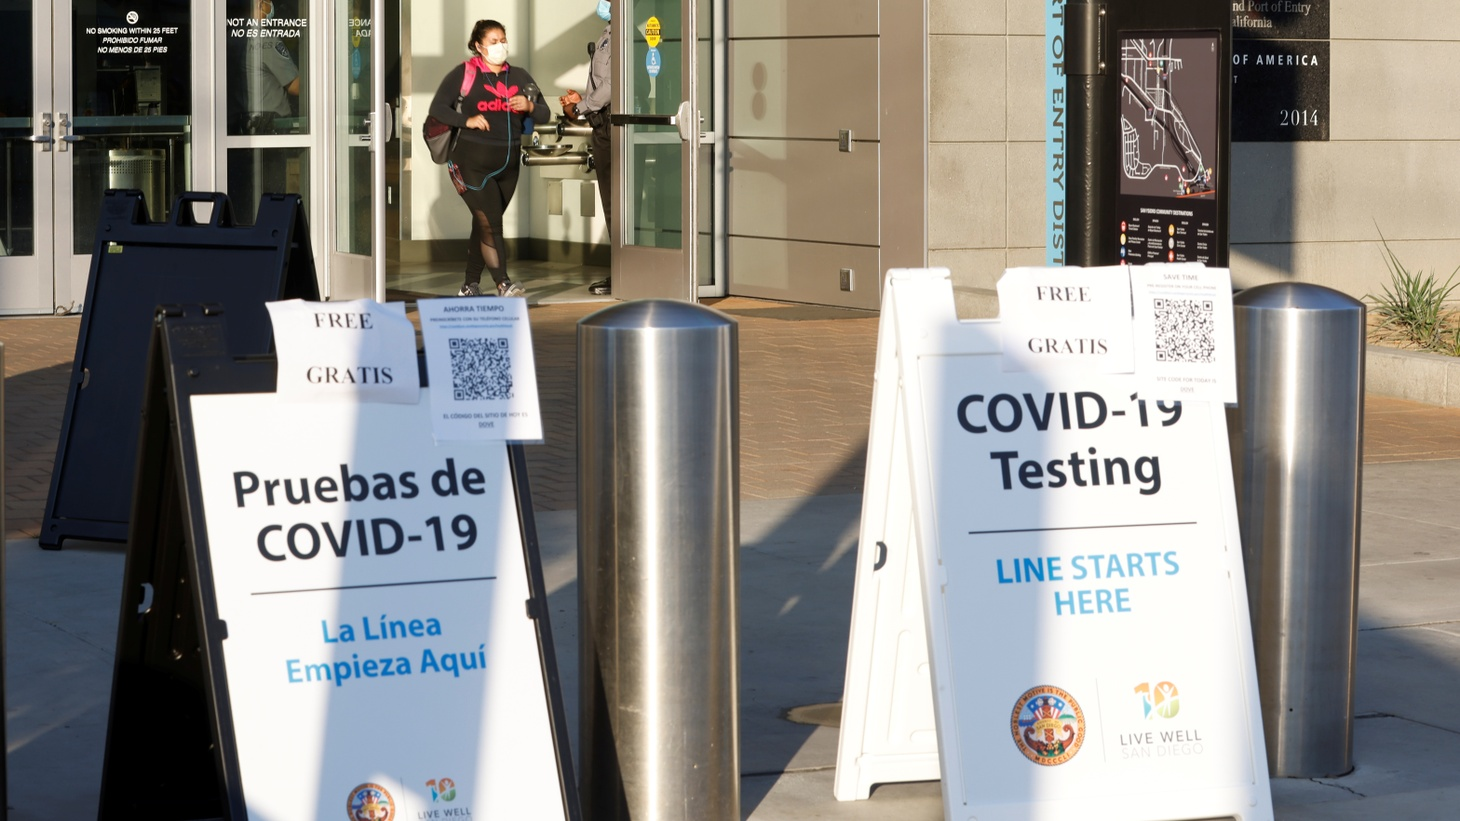 Signs for COVID-19 testing face travelers entering the United States from Mexico at the San Ysidro pedestrian border. San Diego County looks to target essential workers who cross into the United States each day during the outbreak of coronavirus disease (COVID-19). Photo taken in San Diego, California, U.S., August 14, 2020.